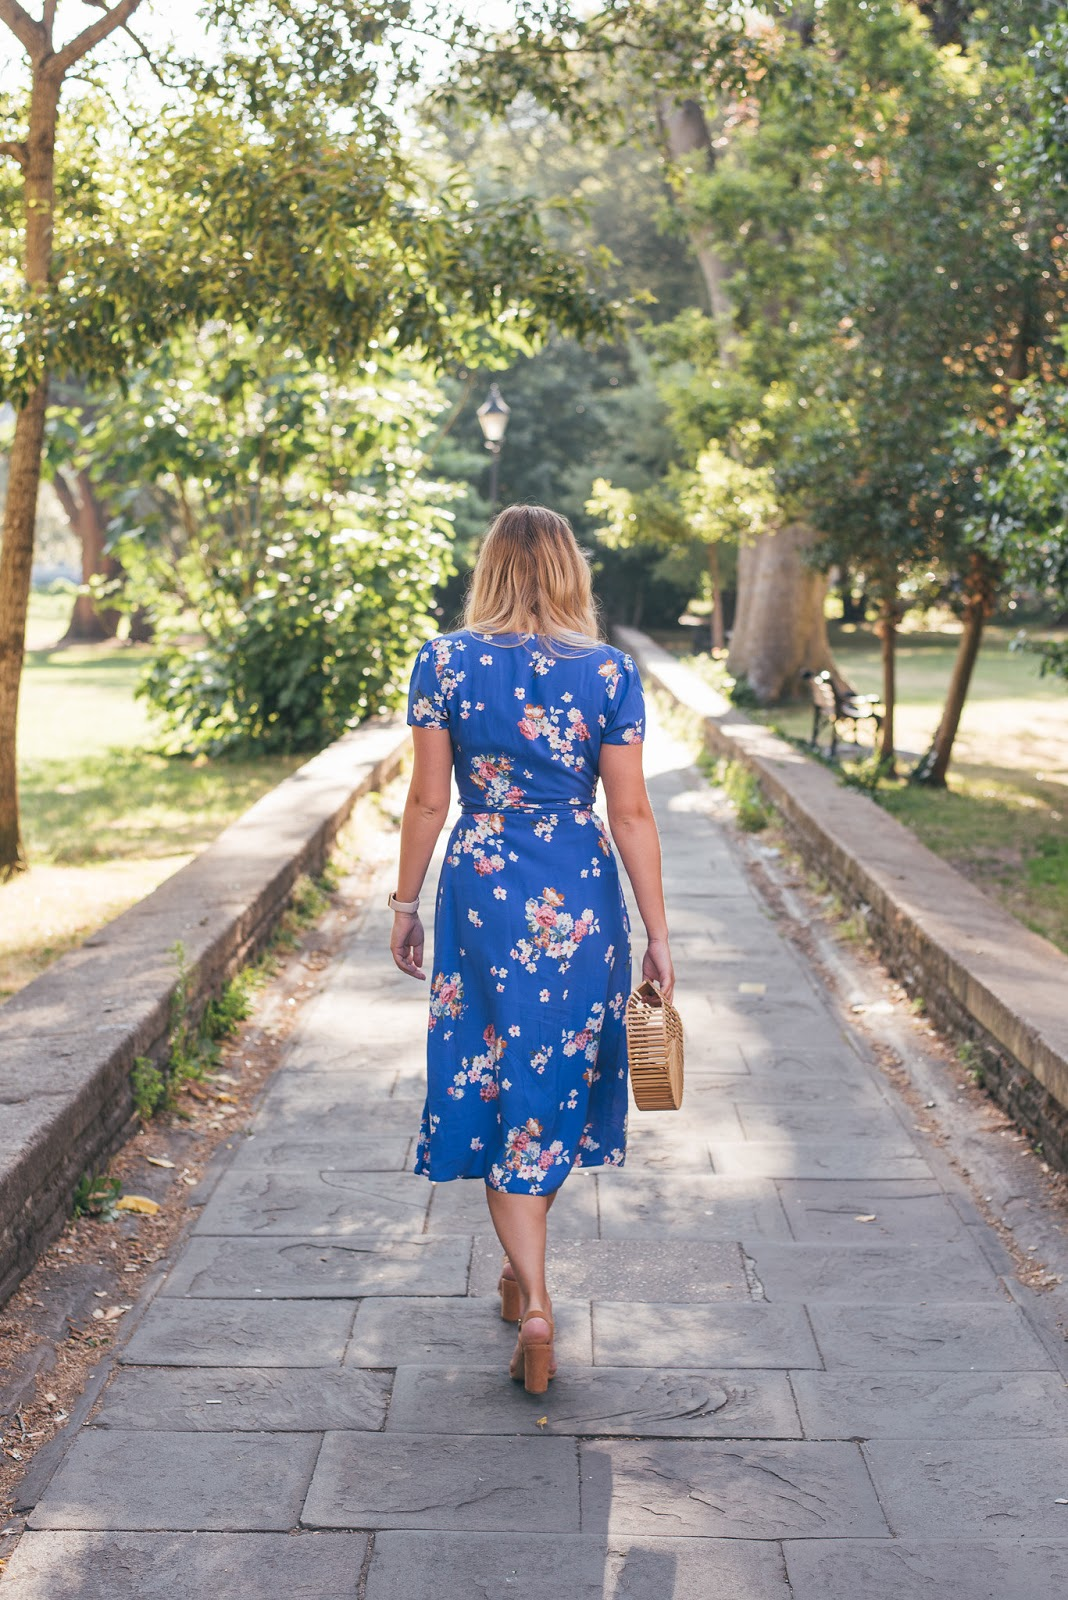 Rachel Emily Walking away from the Camera in Clifton wearing the Blue Midi Dress